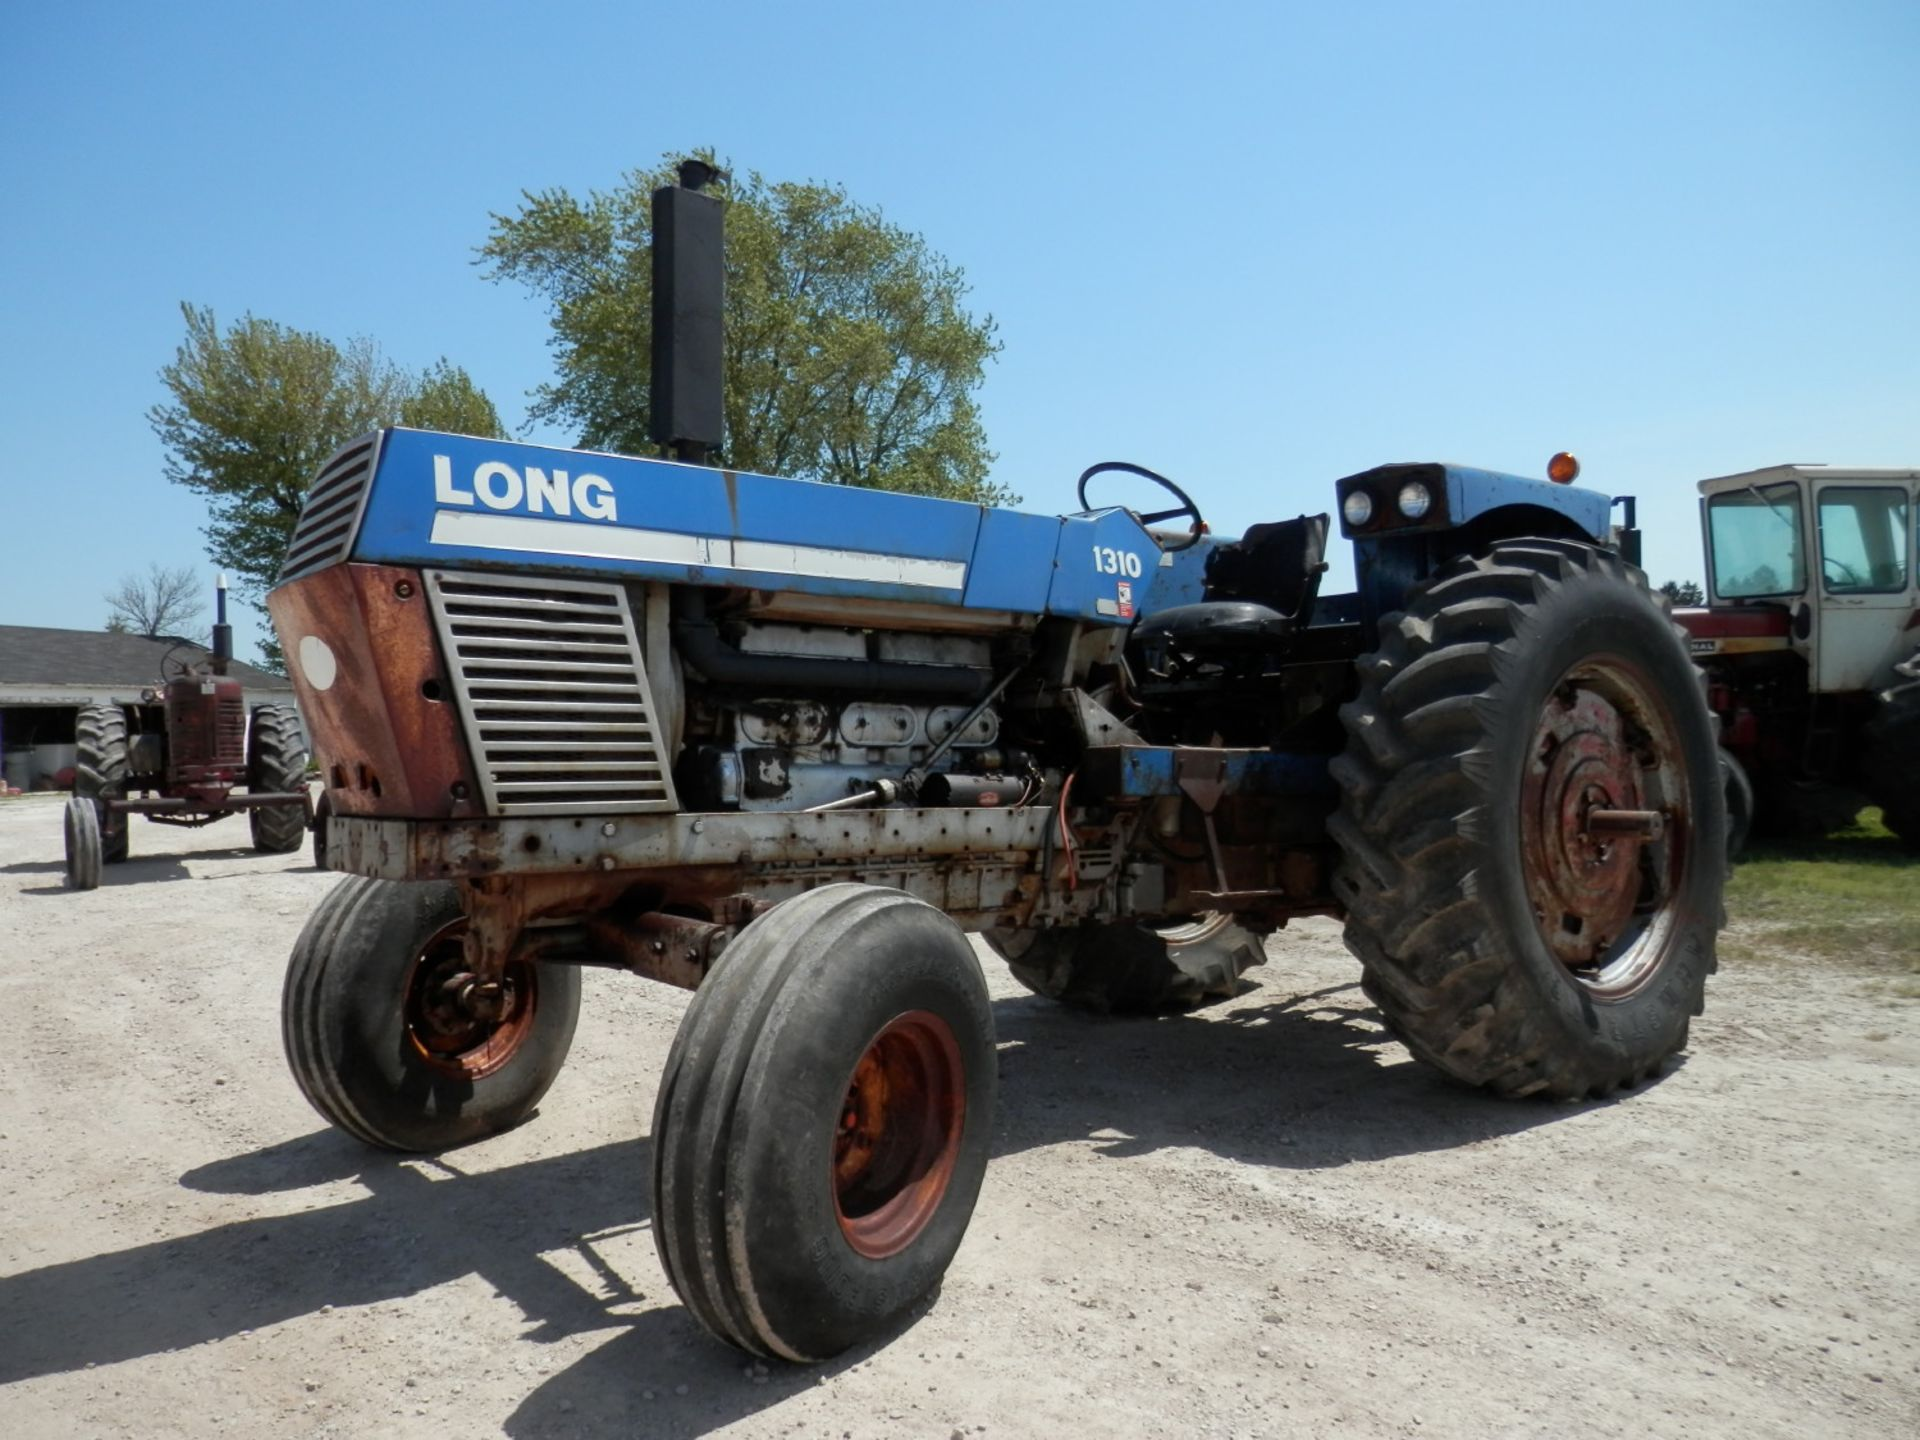 LONG 1310 DSL. TRACTOR - Image 3 of 8